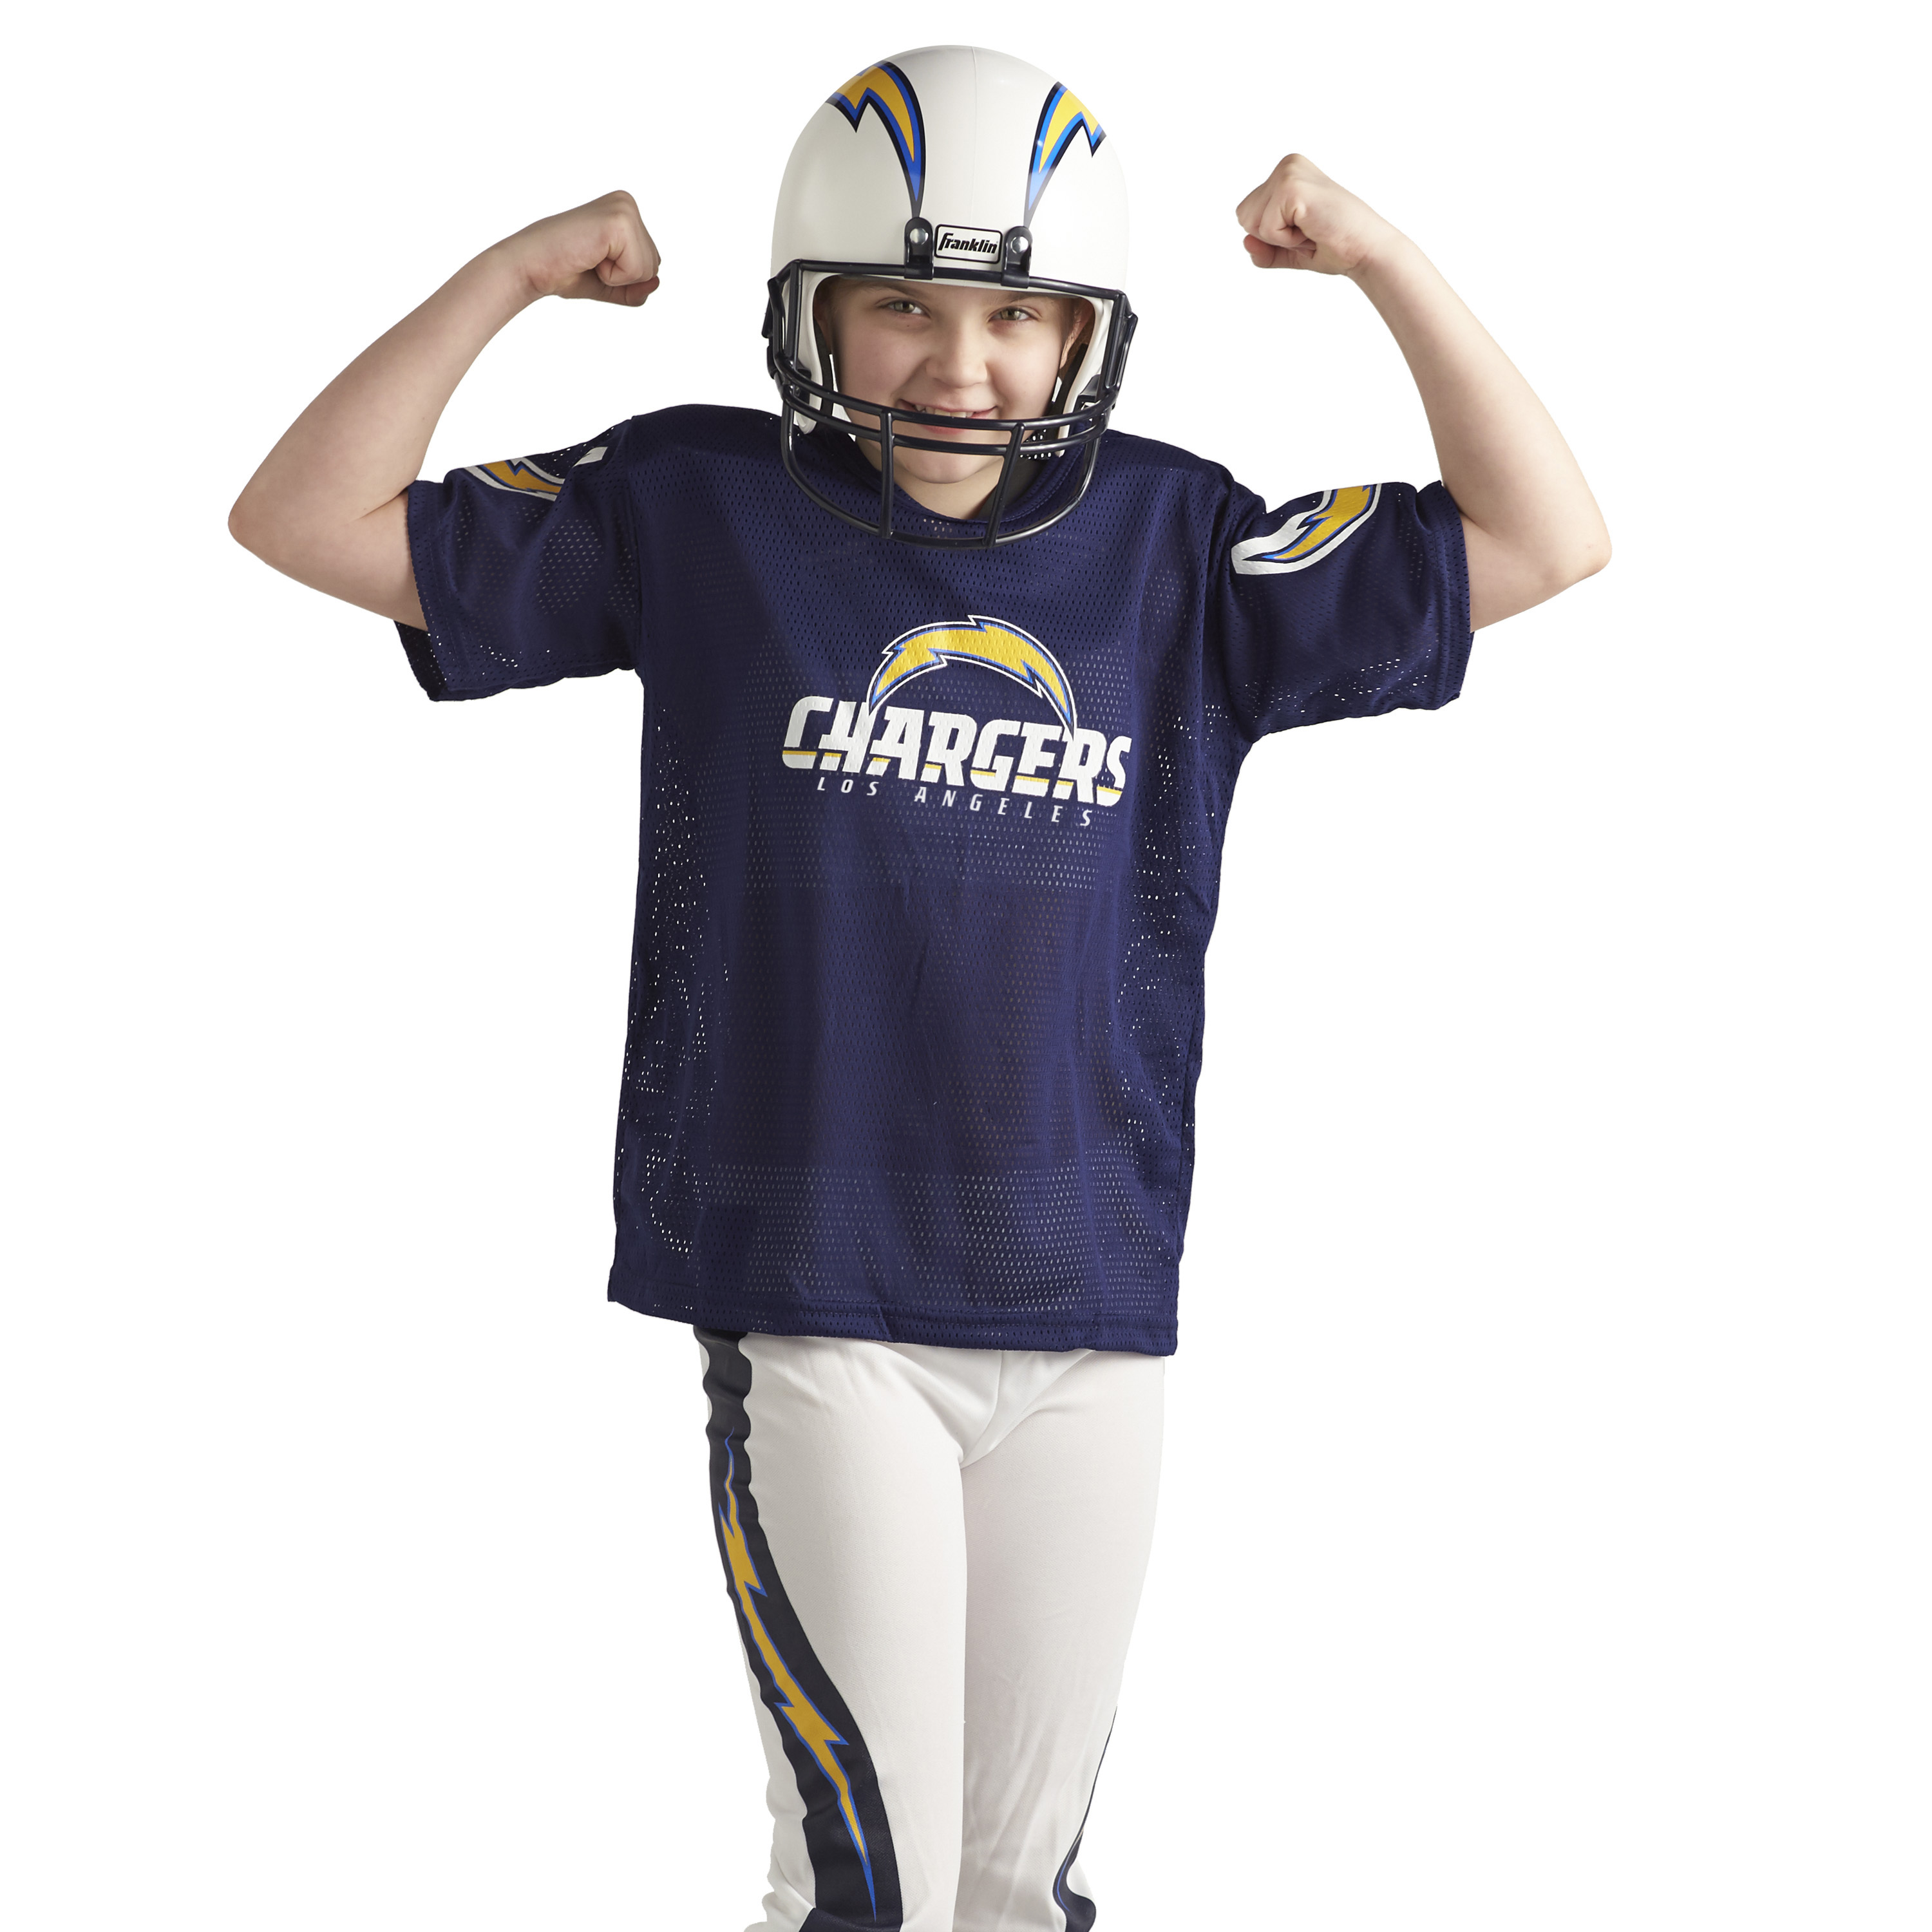 94b6dba6 Details about Kids Los Angeles Chargers Costume Helmet NFL Football Youth  Sports Uniform Set L